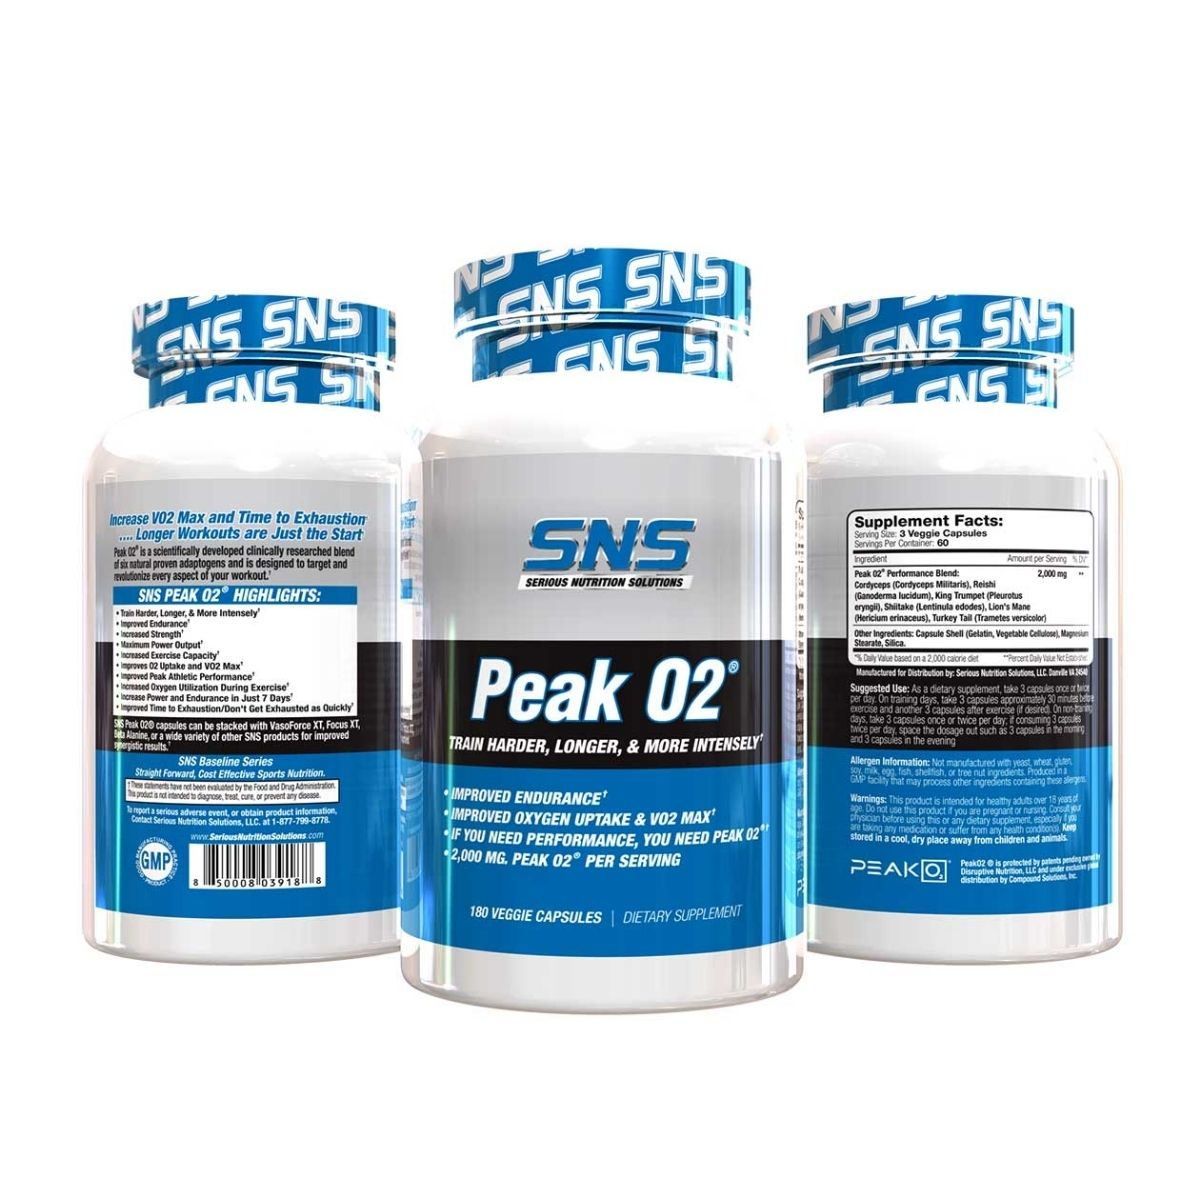 Serious Nutrition Solutions Introduces New Basic Peak02 Supplement